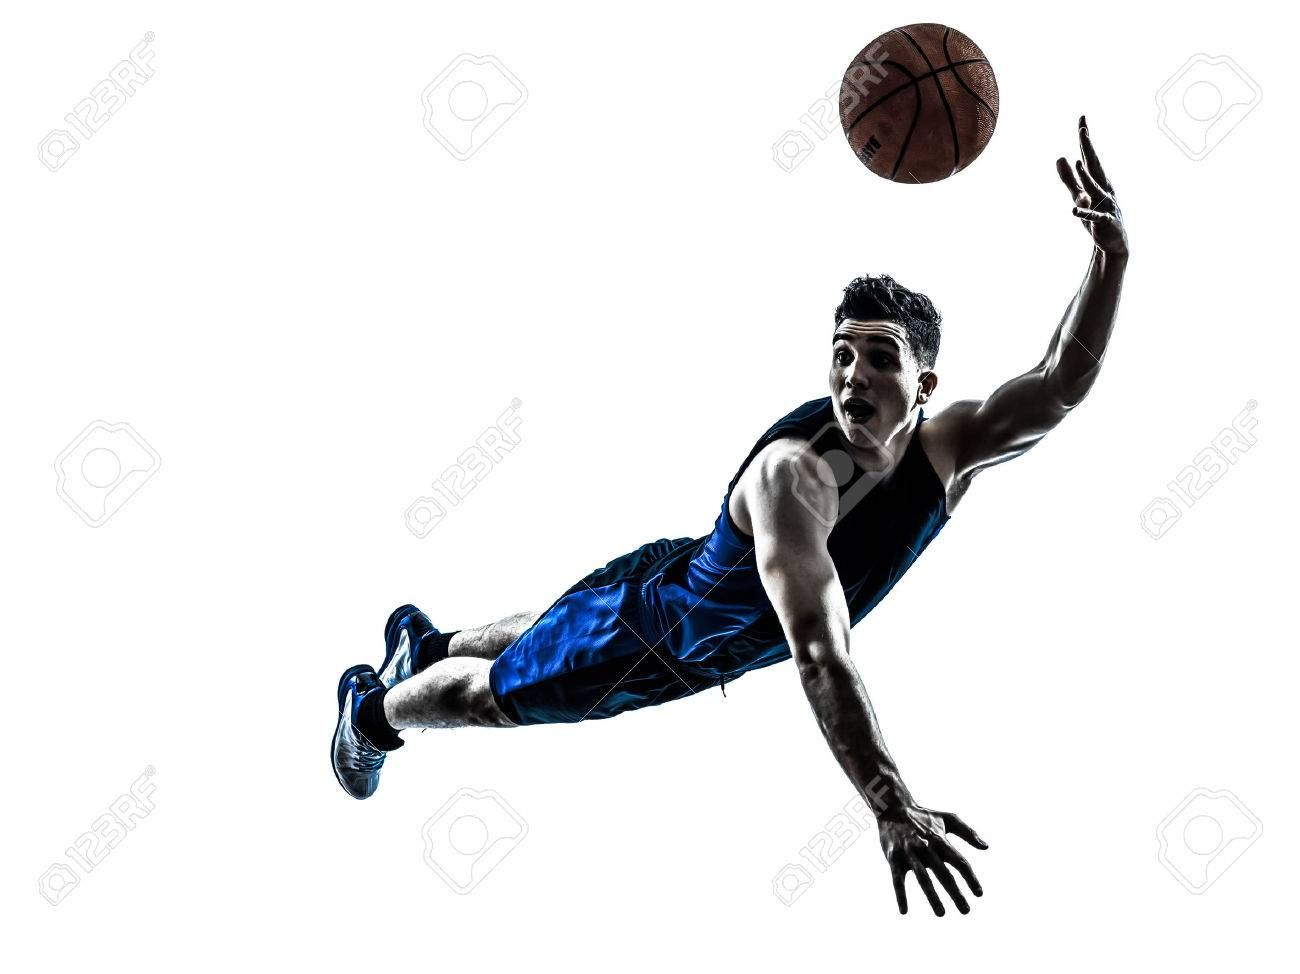 One Caucasian Man Basketball Player Jumping Throwing In Silhouette Isolated White Background Ad Player Jump Sports Posters Basketball Sport Poster Image